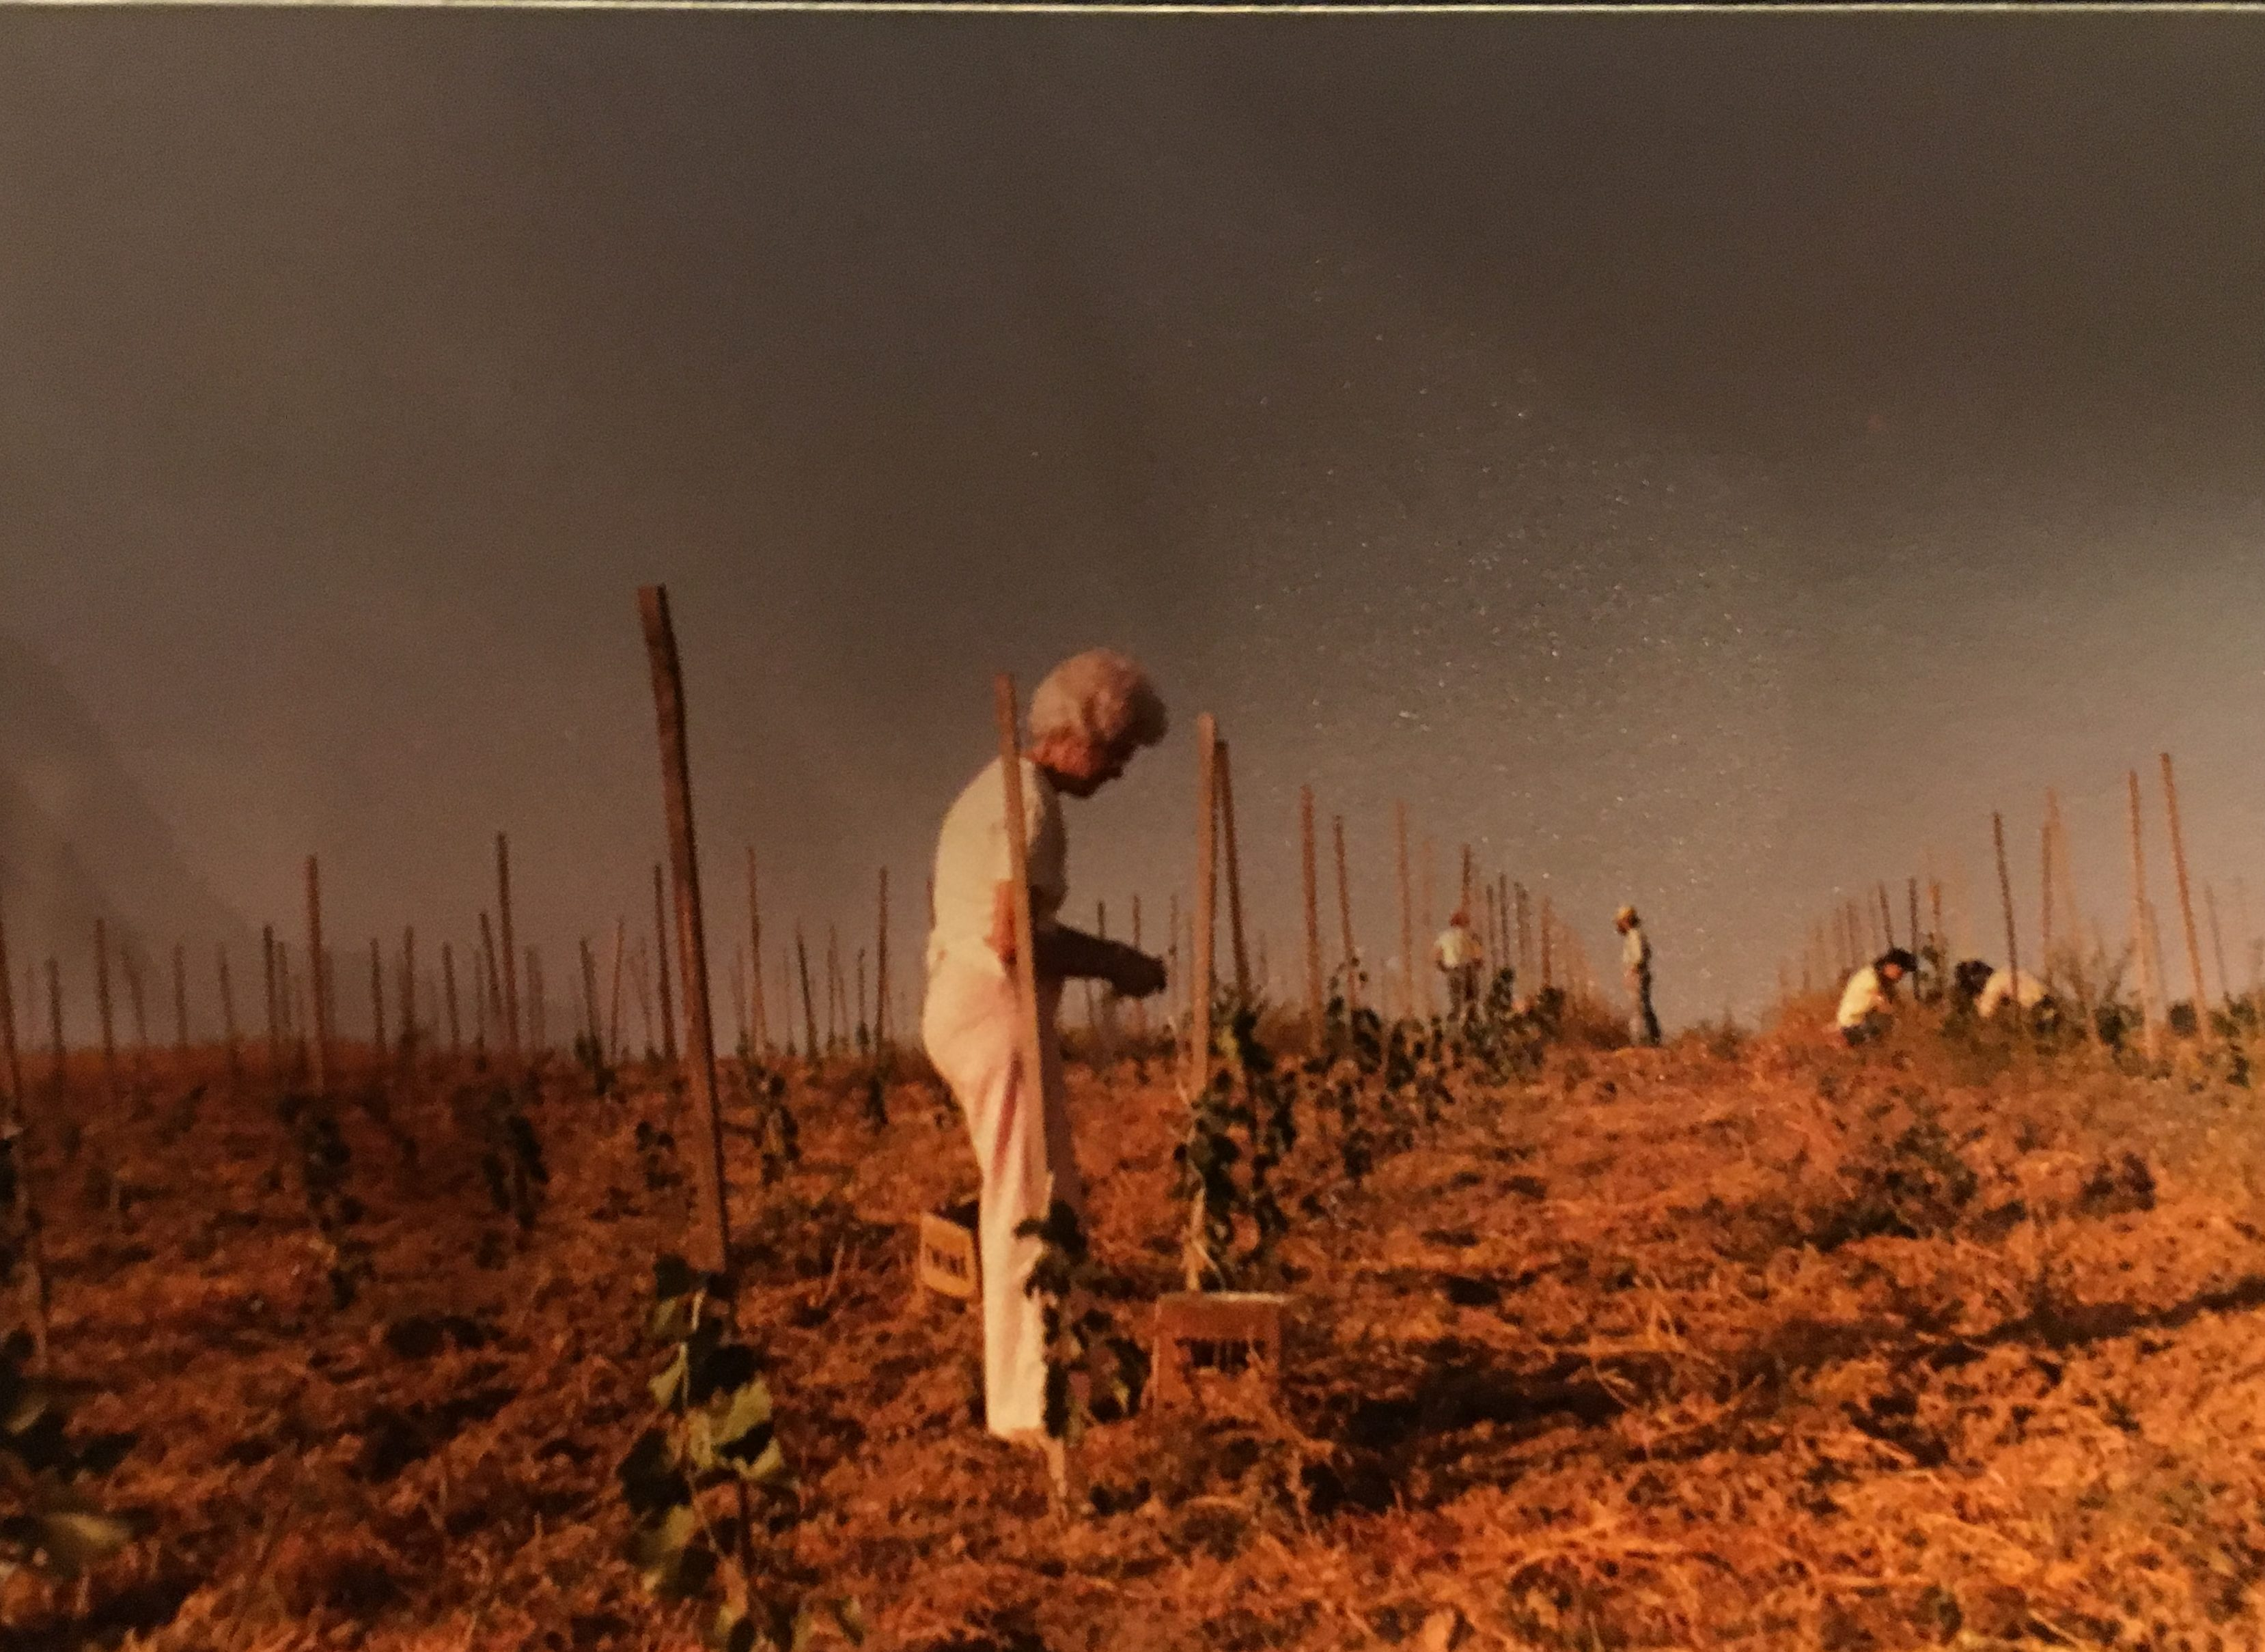 Tending to Vines